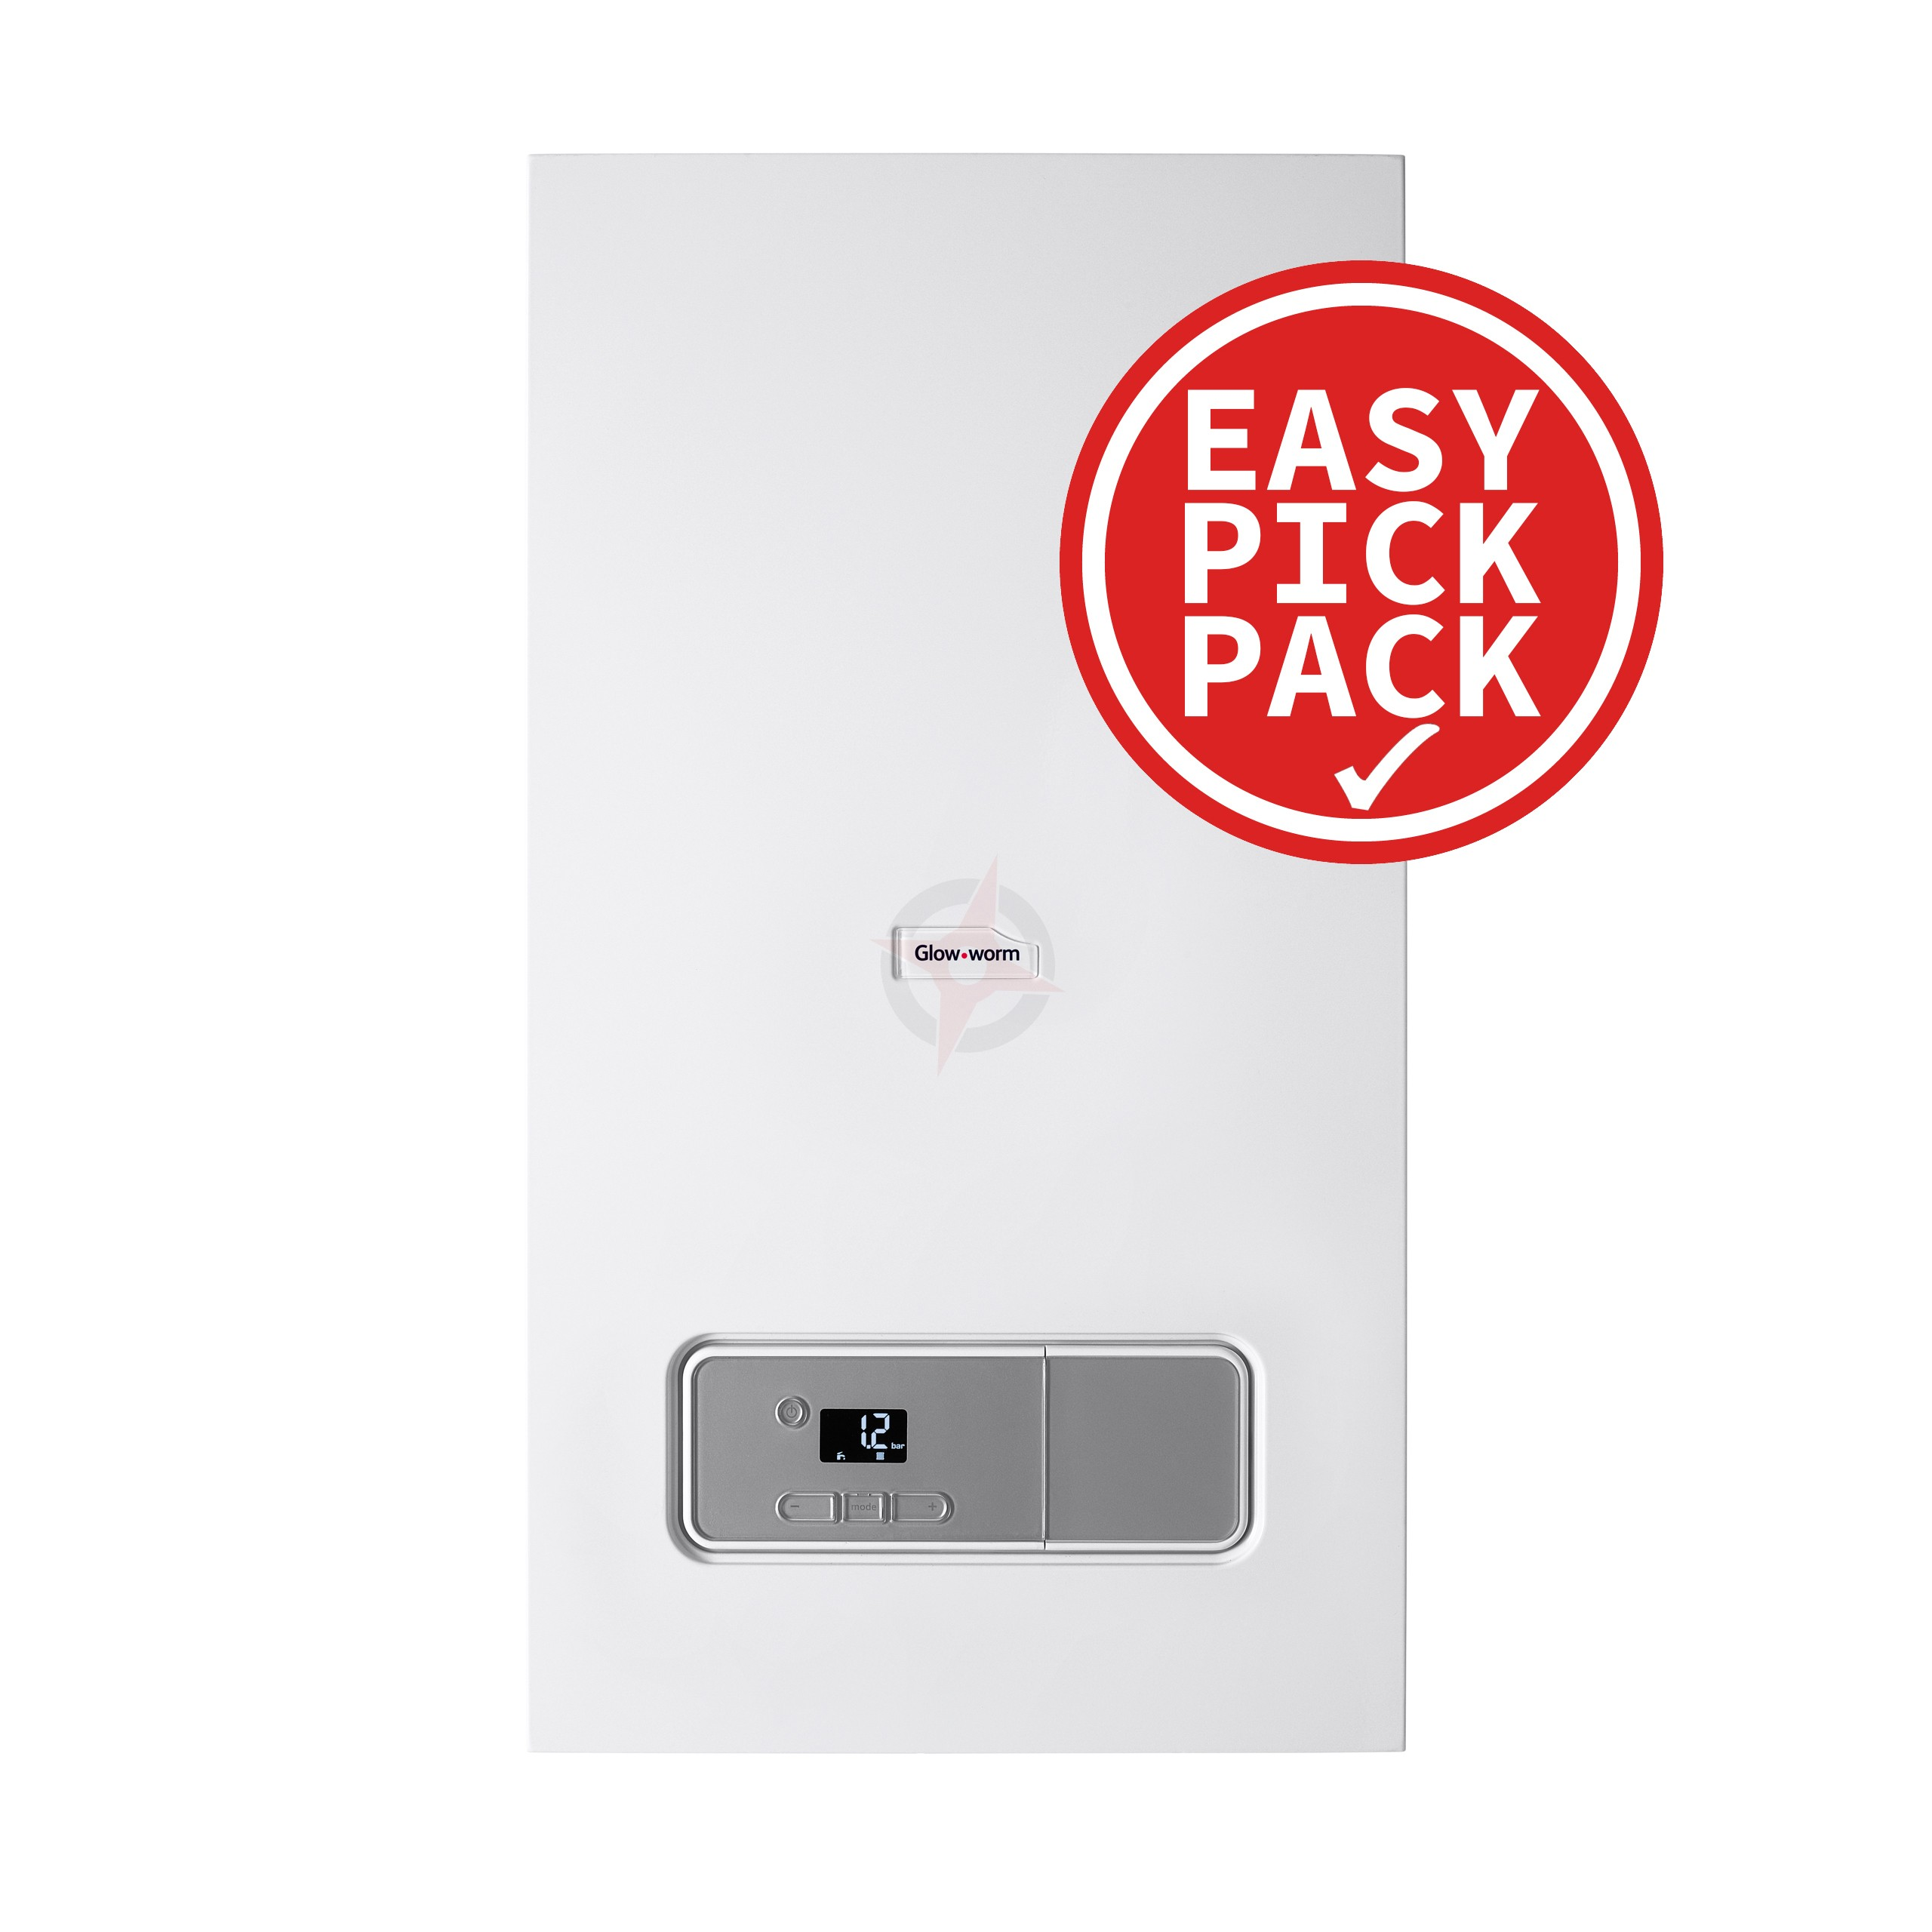 Glow-worm Energy 12S (ErP) System Boiler Easy Pick Pack